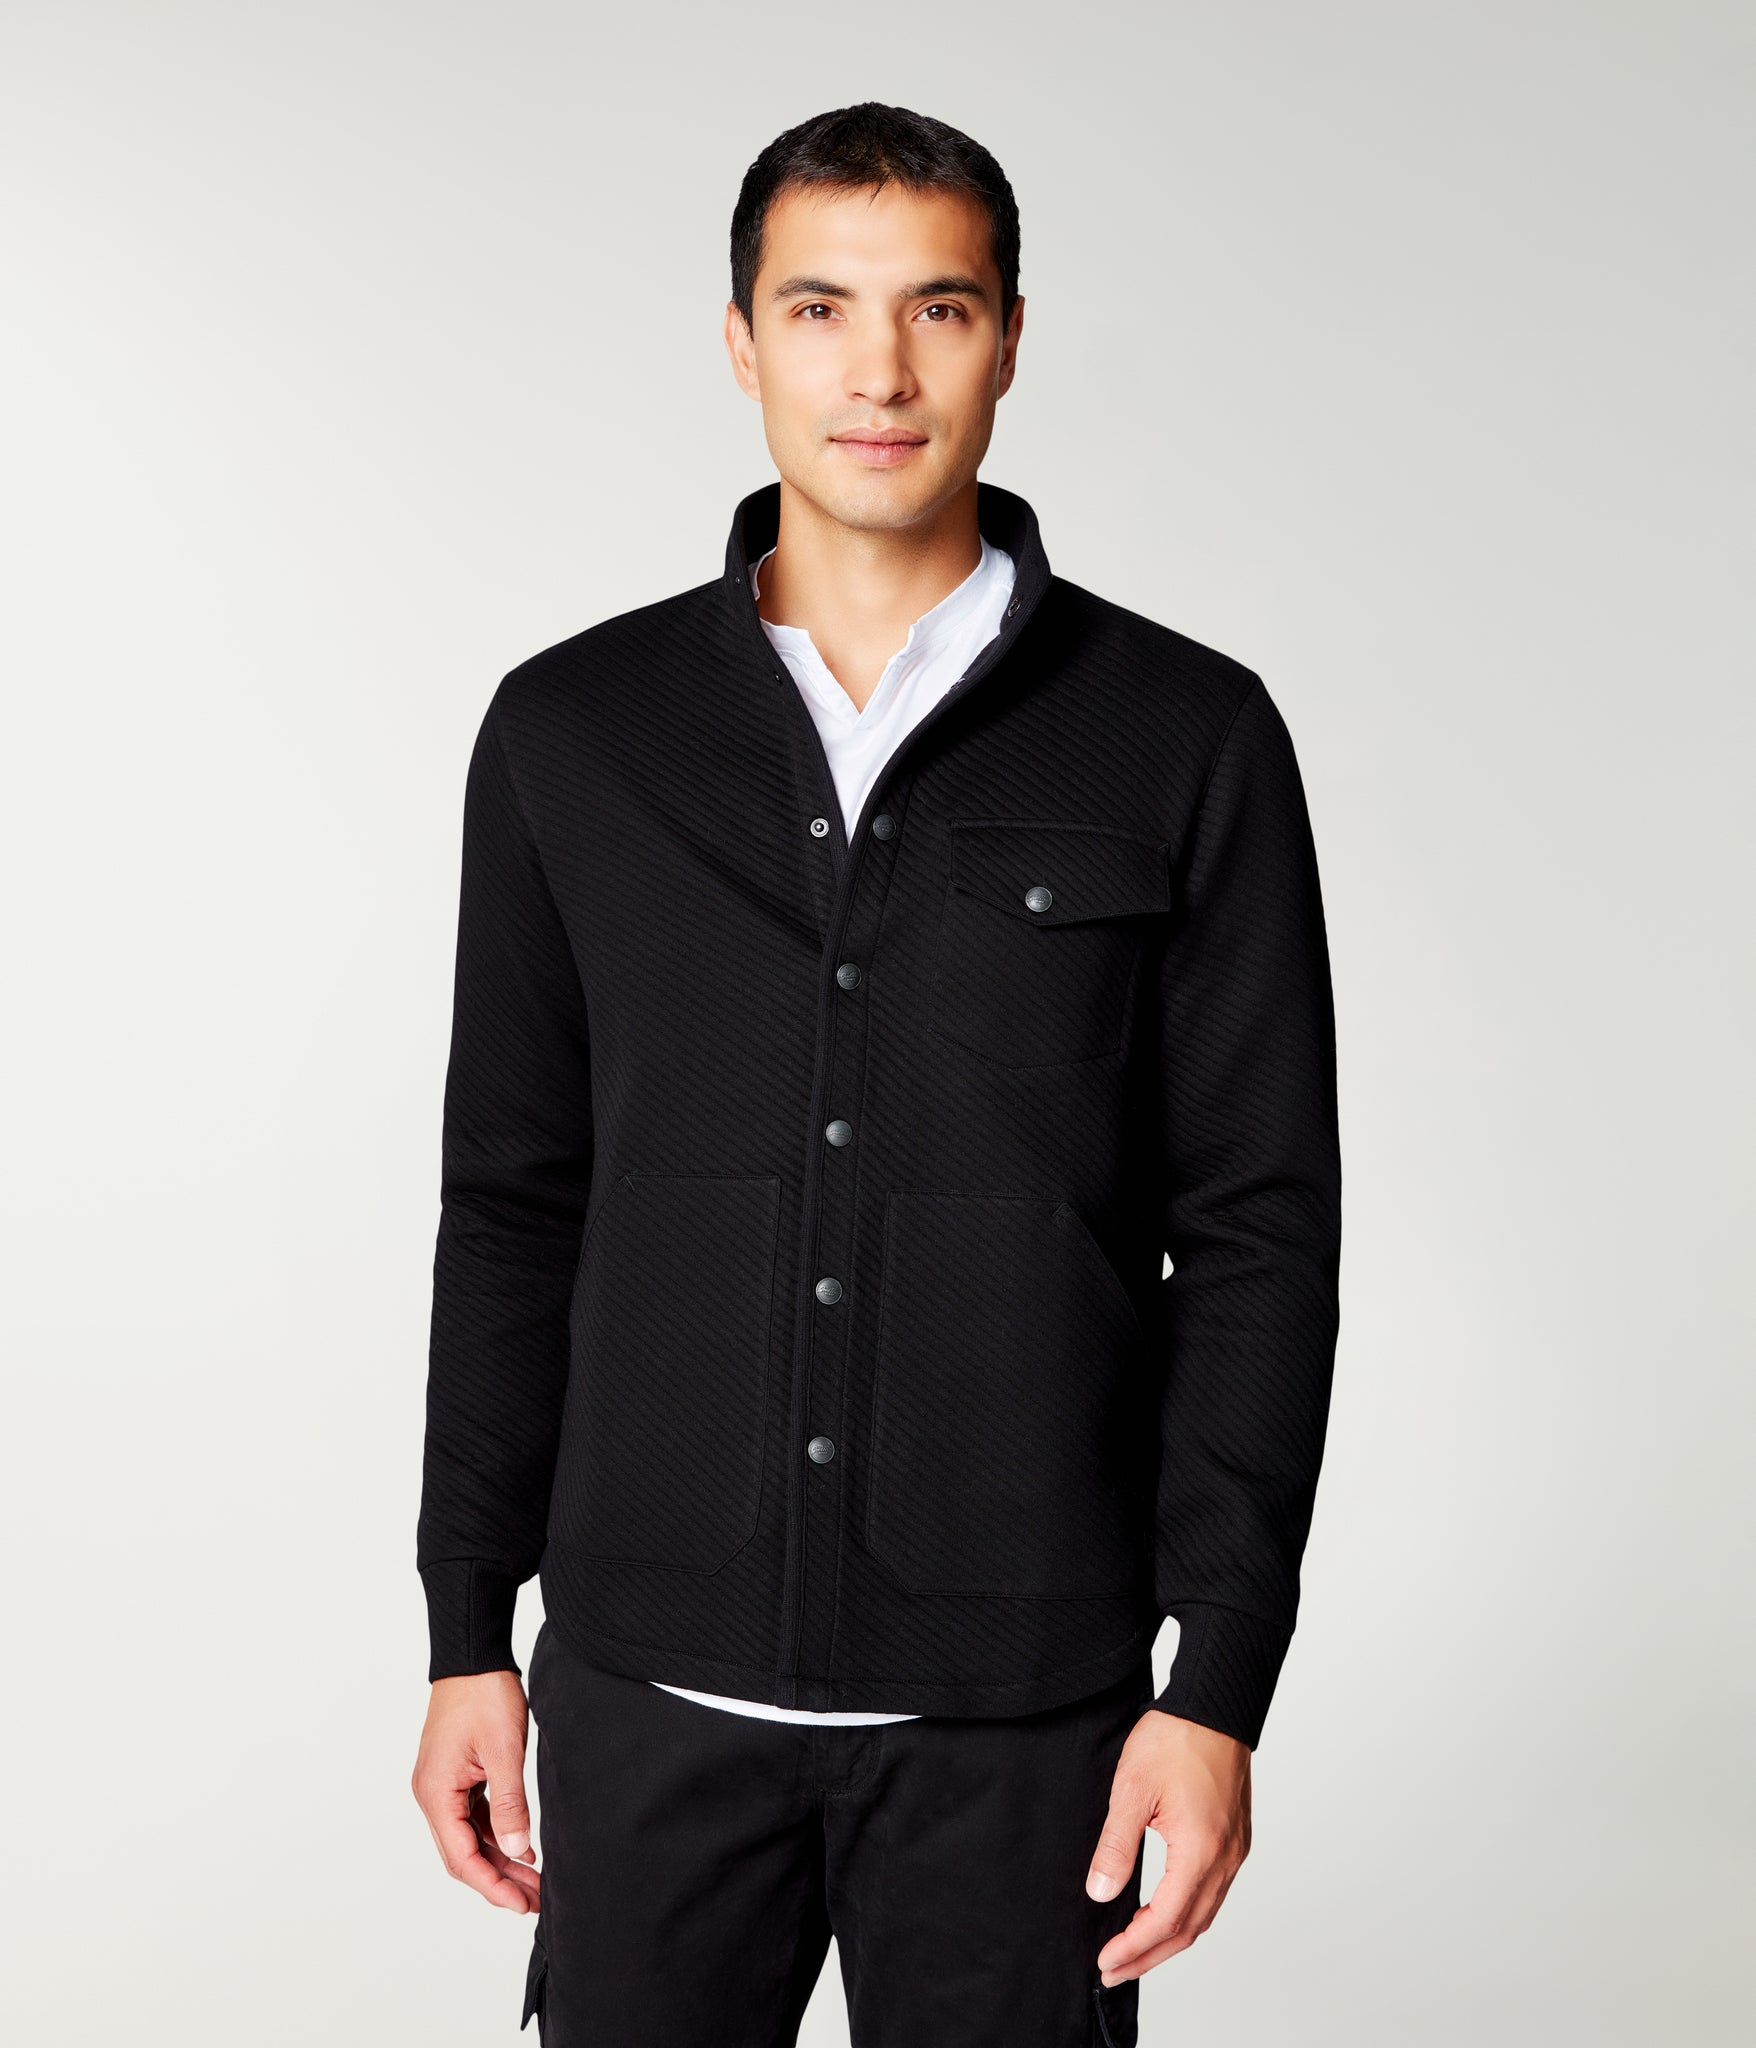 Fuji Shirt Jacket in Twill Quilt Jacquard - Black